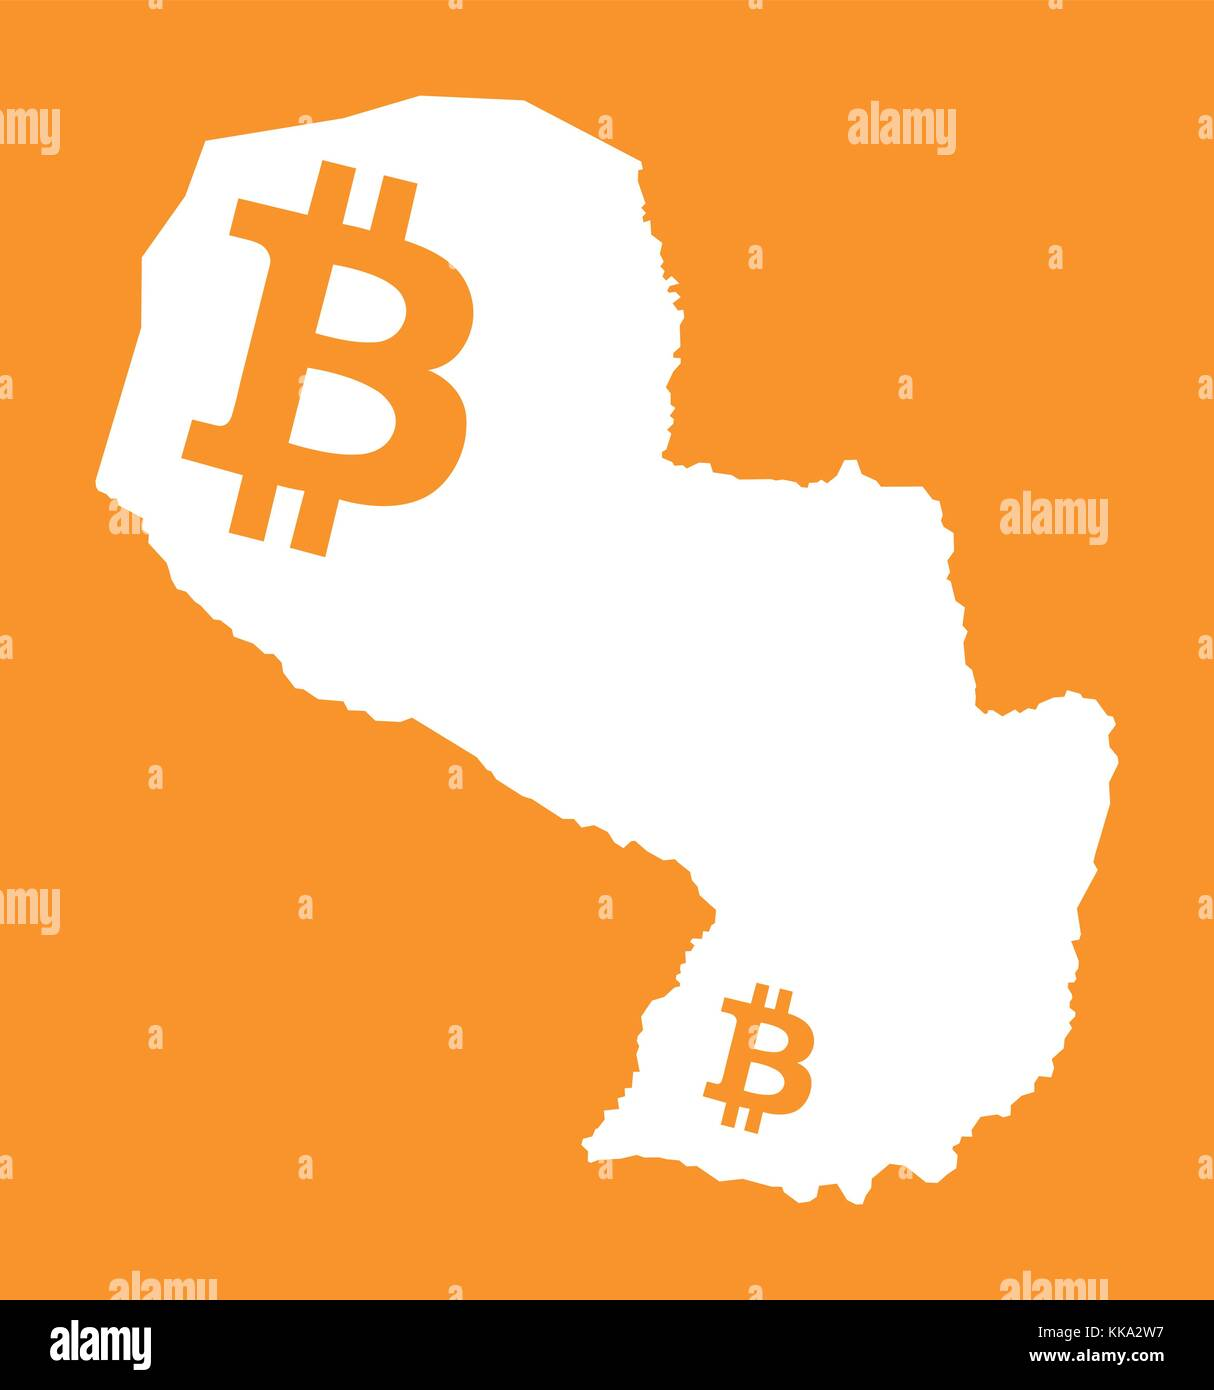 Paraguay coin stock photos paraguay coin stock images alamy paraguay map with bitcoin crypto currency symbol illustration stock image buycottarizona